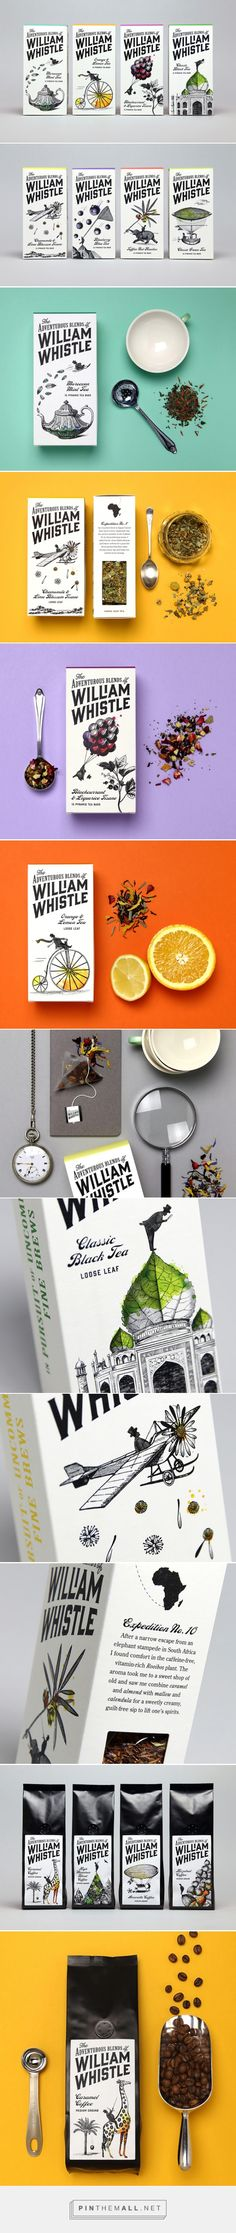 Adventures of William Whistle popular tea & coffee brand packaging PD